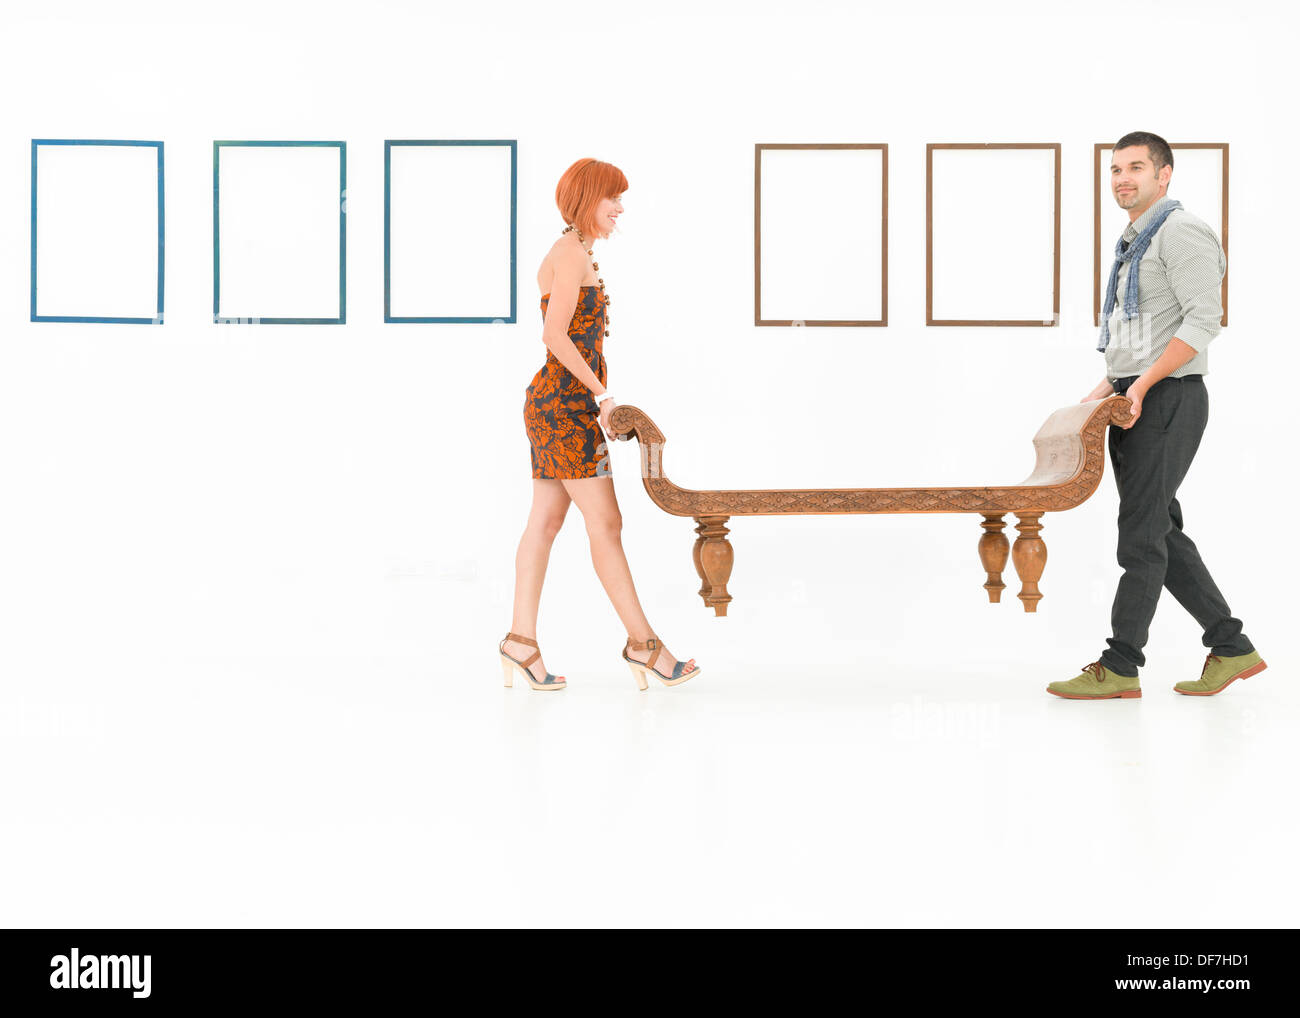 two caucasian people carrying a wooden bench in a white room with empty frames displayed on walls - Stock Image